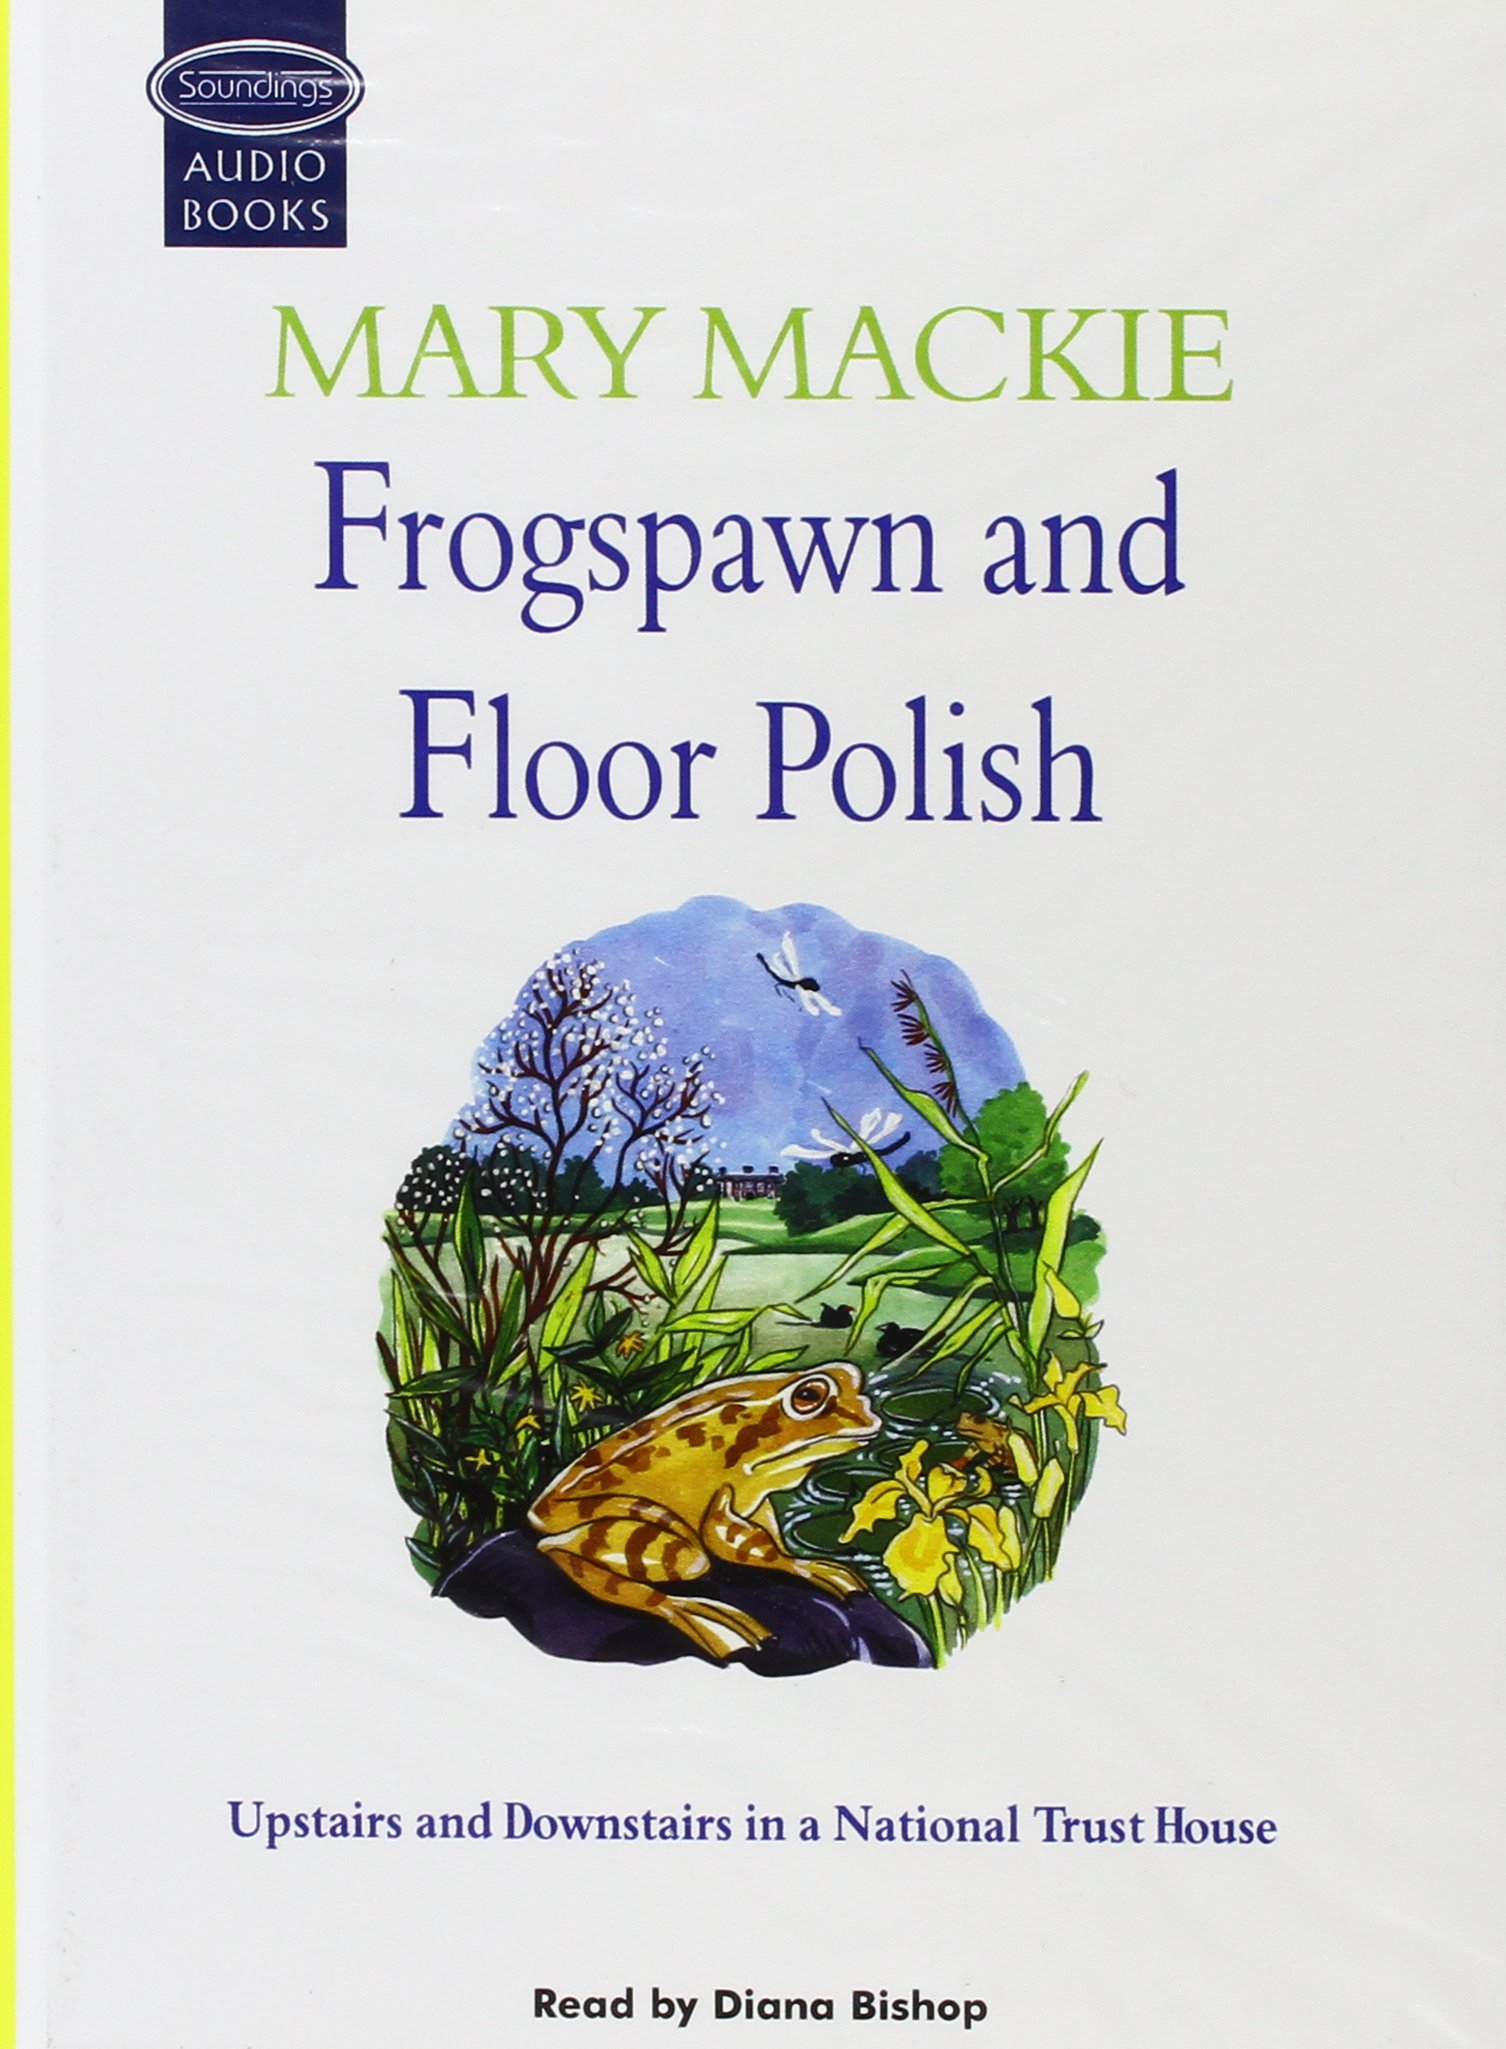 Frogspawn And Floor Polish (Soundings S) by Soundings Audio Books